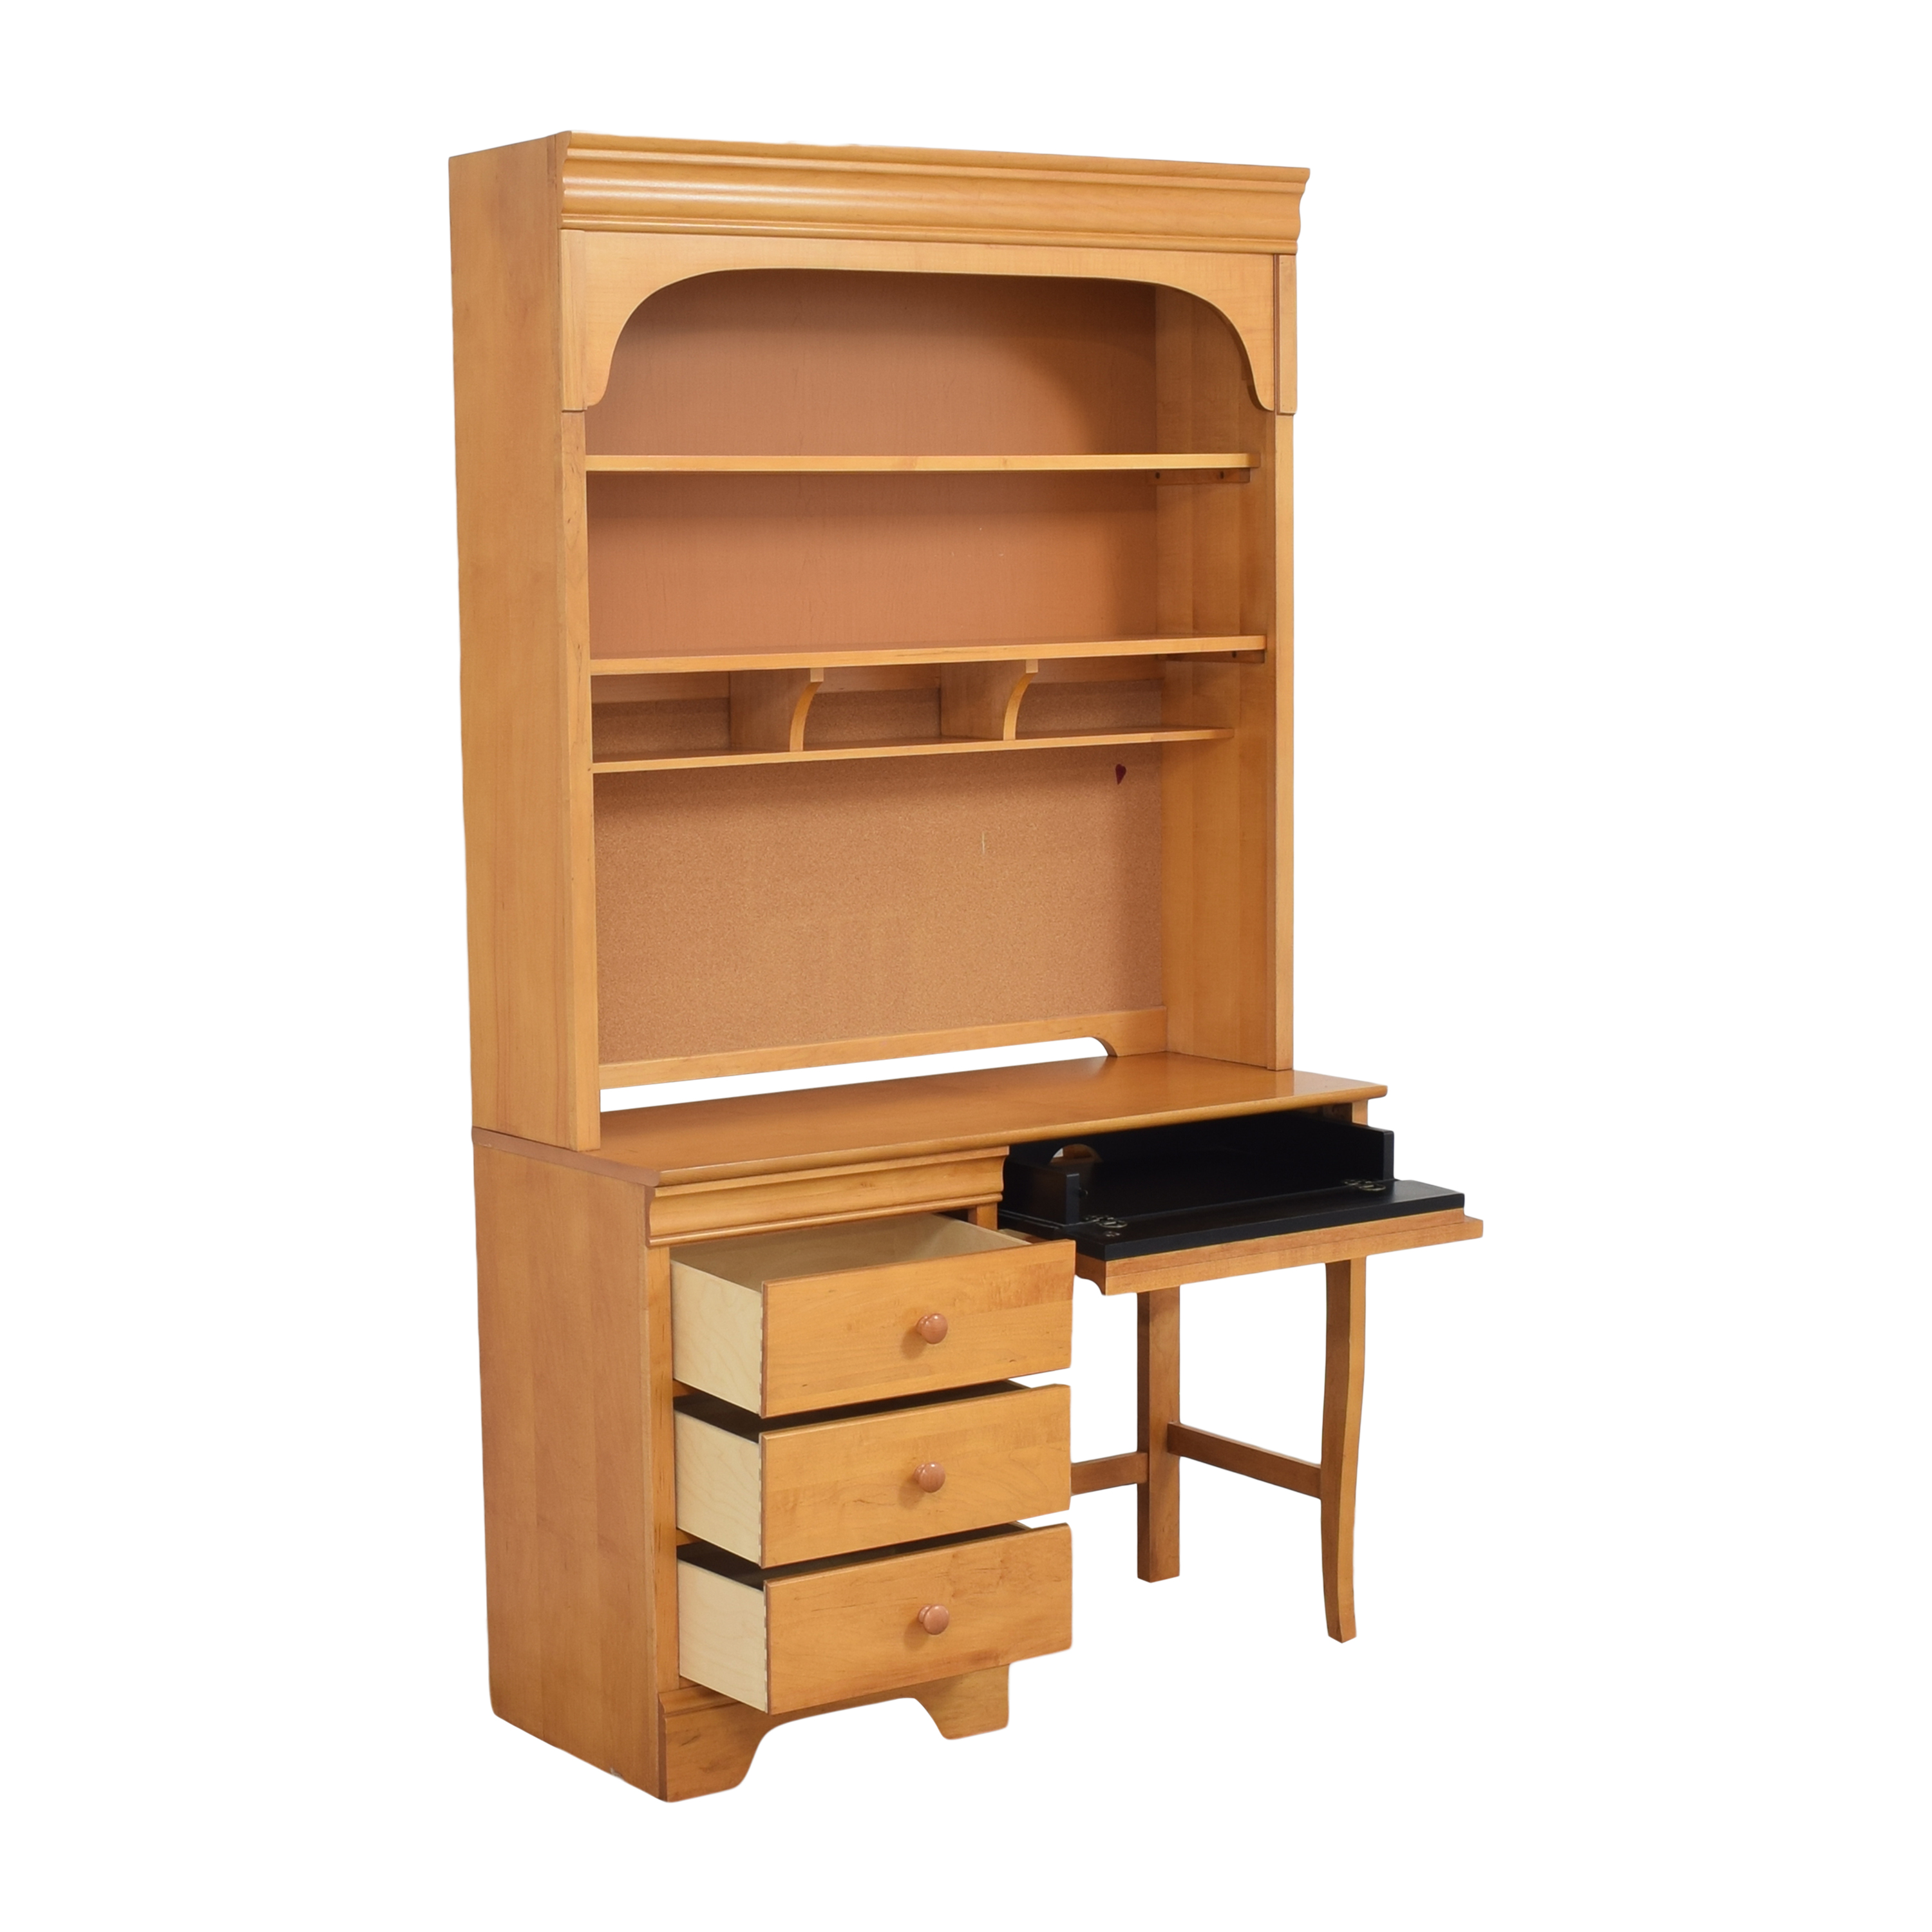 Stanley Furniture Stanley Furniture Young America Student Desk with Hutch price